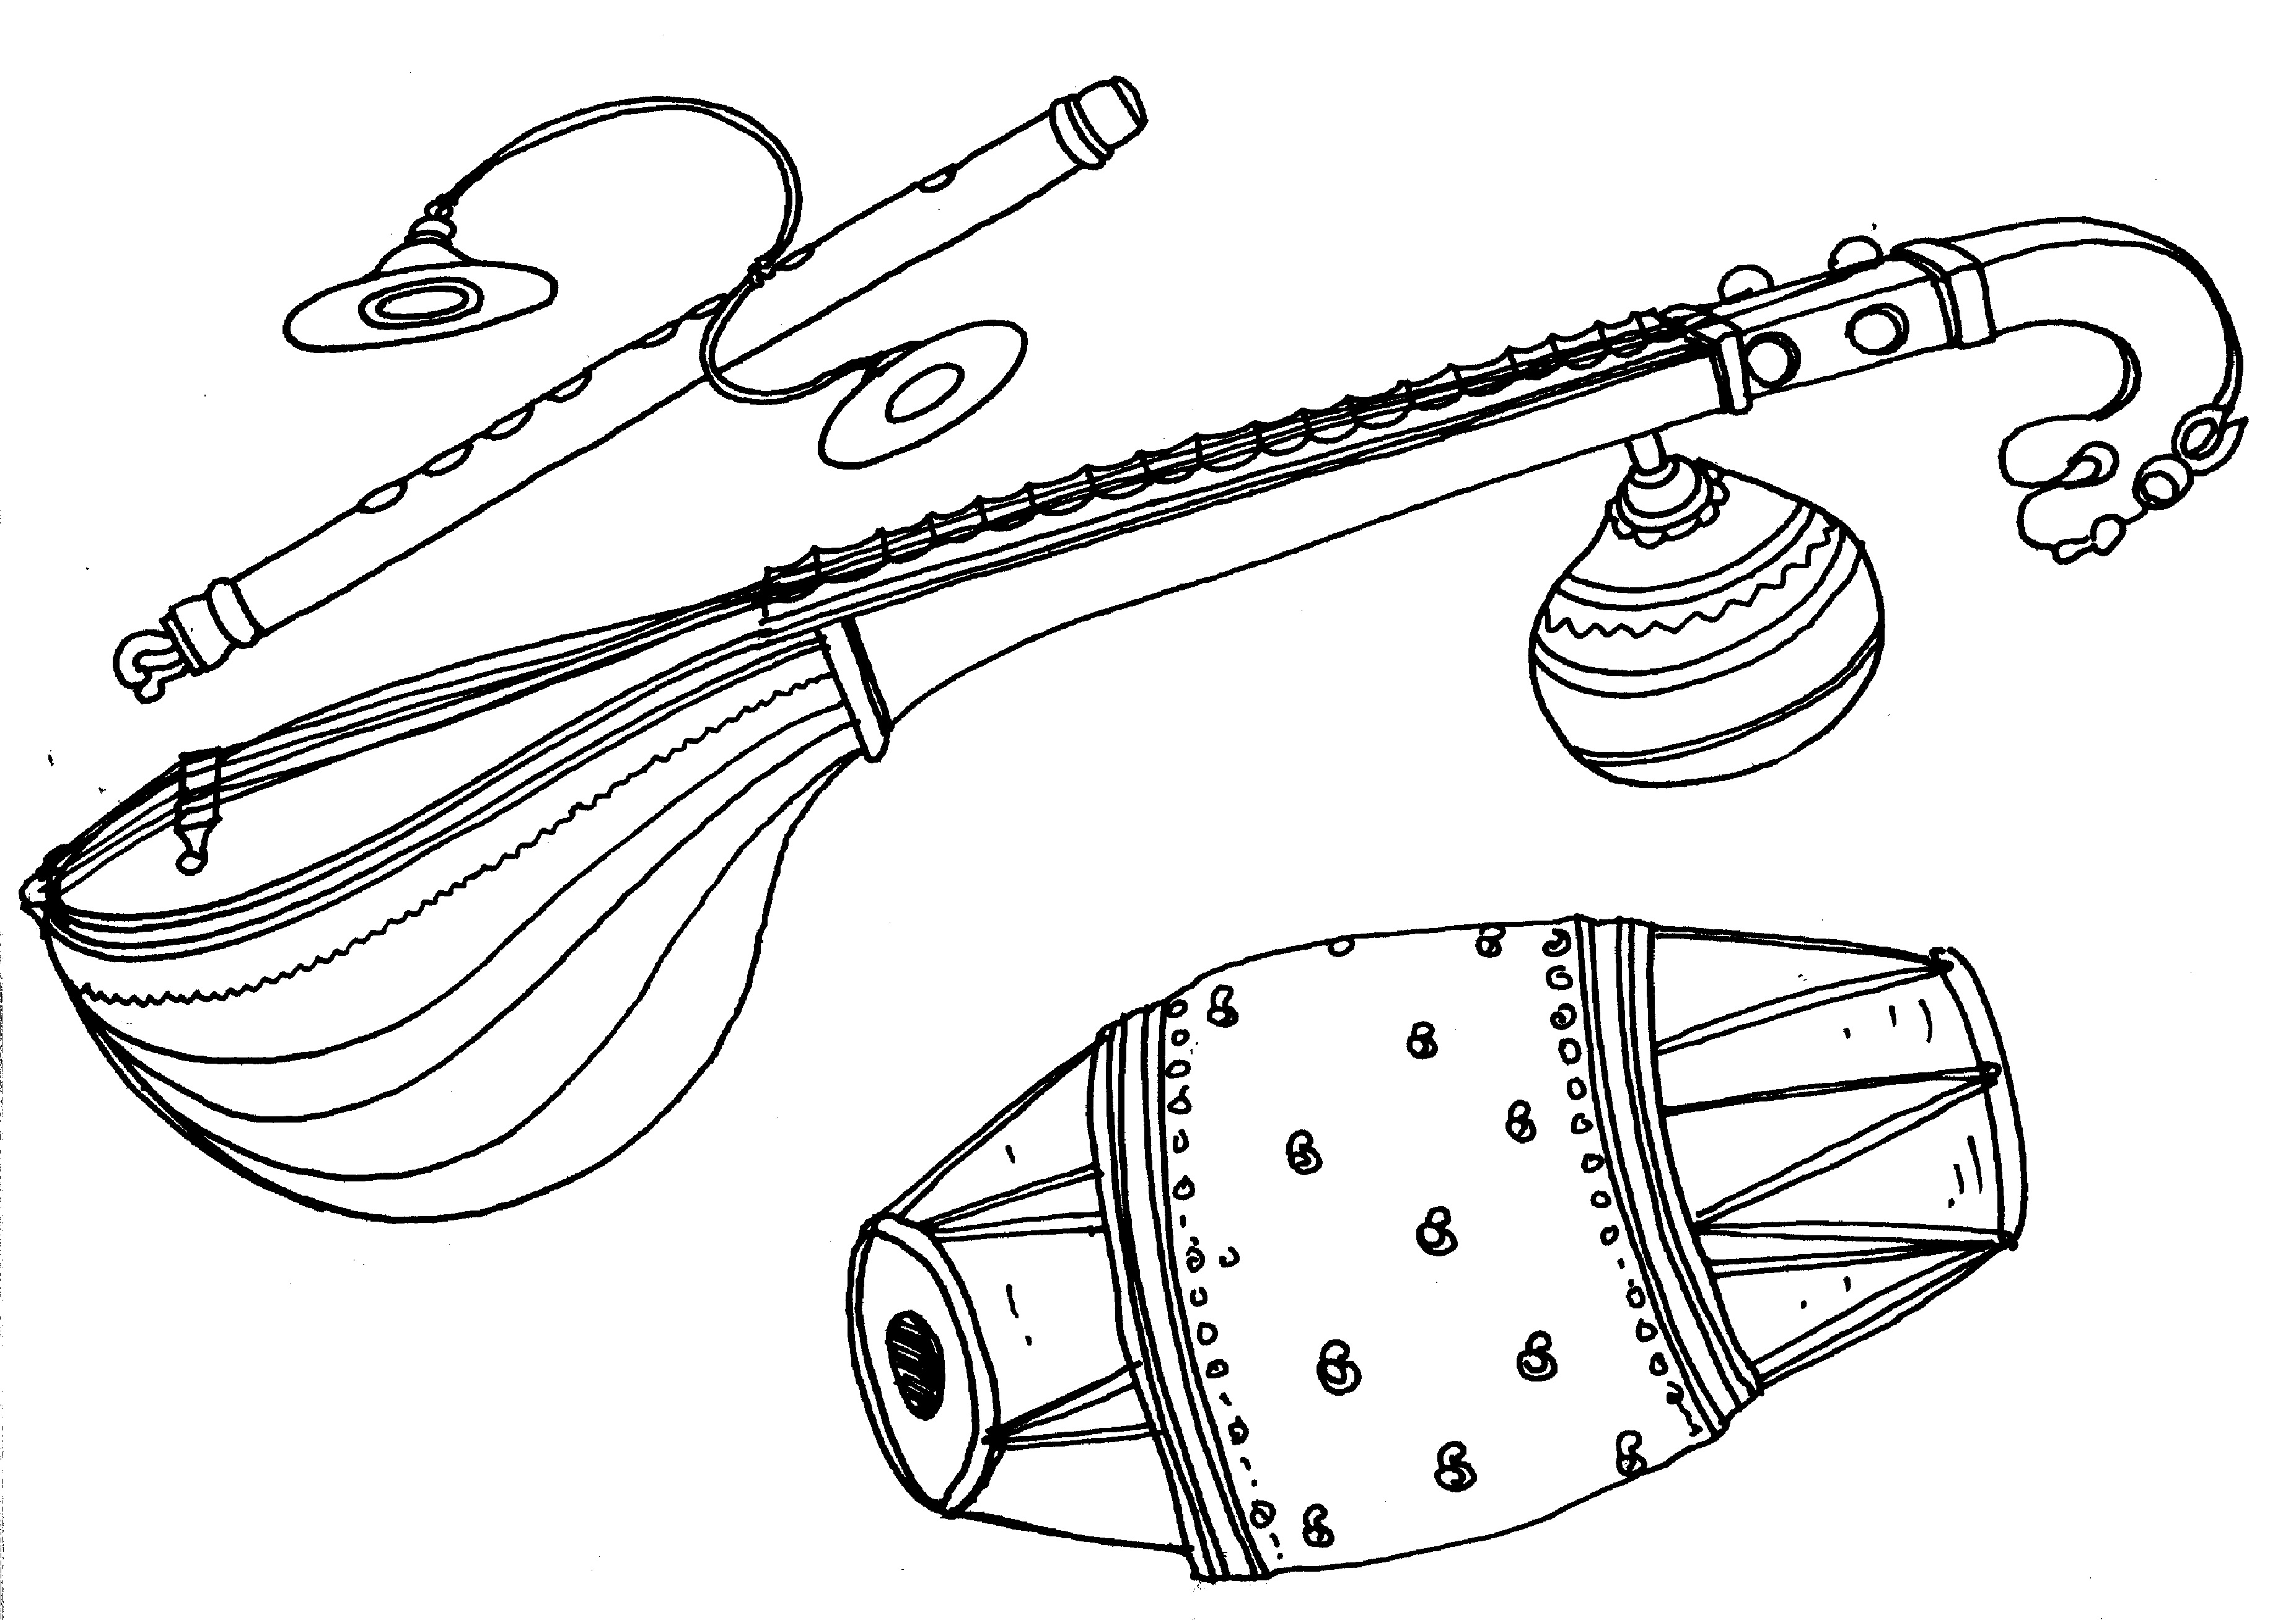 musical instrument drawings musical instruments drawing at getdrawings free download musical drawings instrument